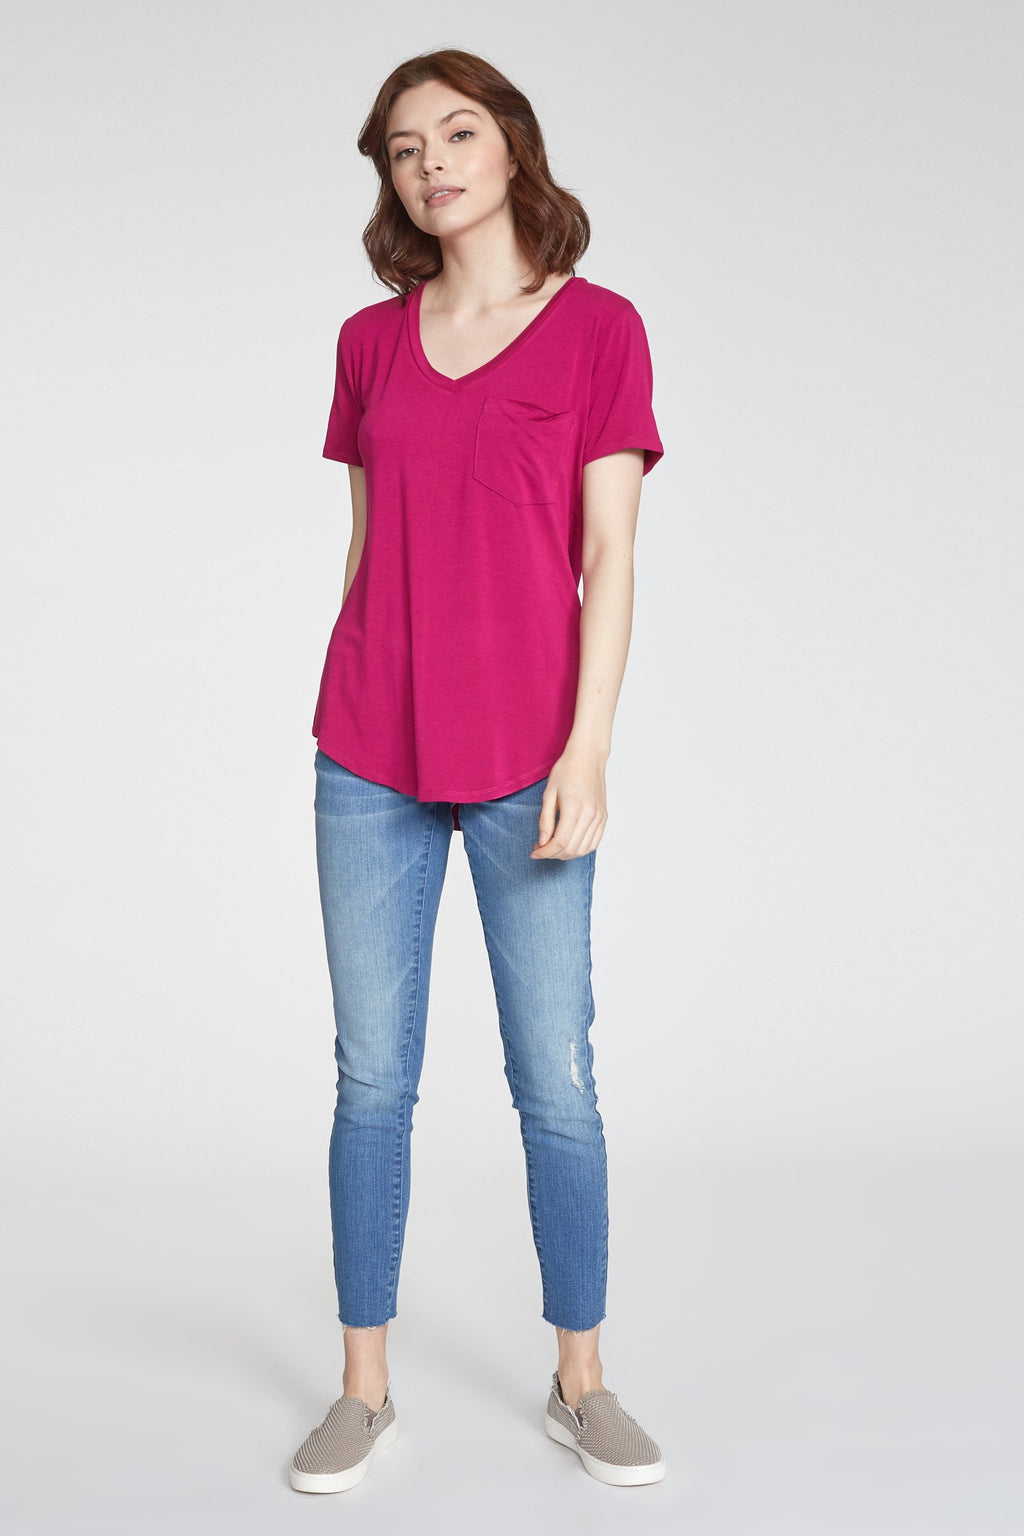 Phoenix Pocket V-Neck Hot Pink Tee